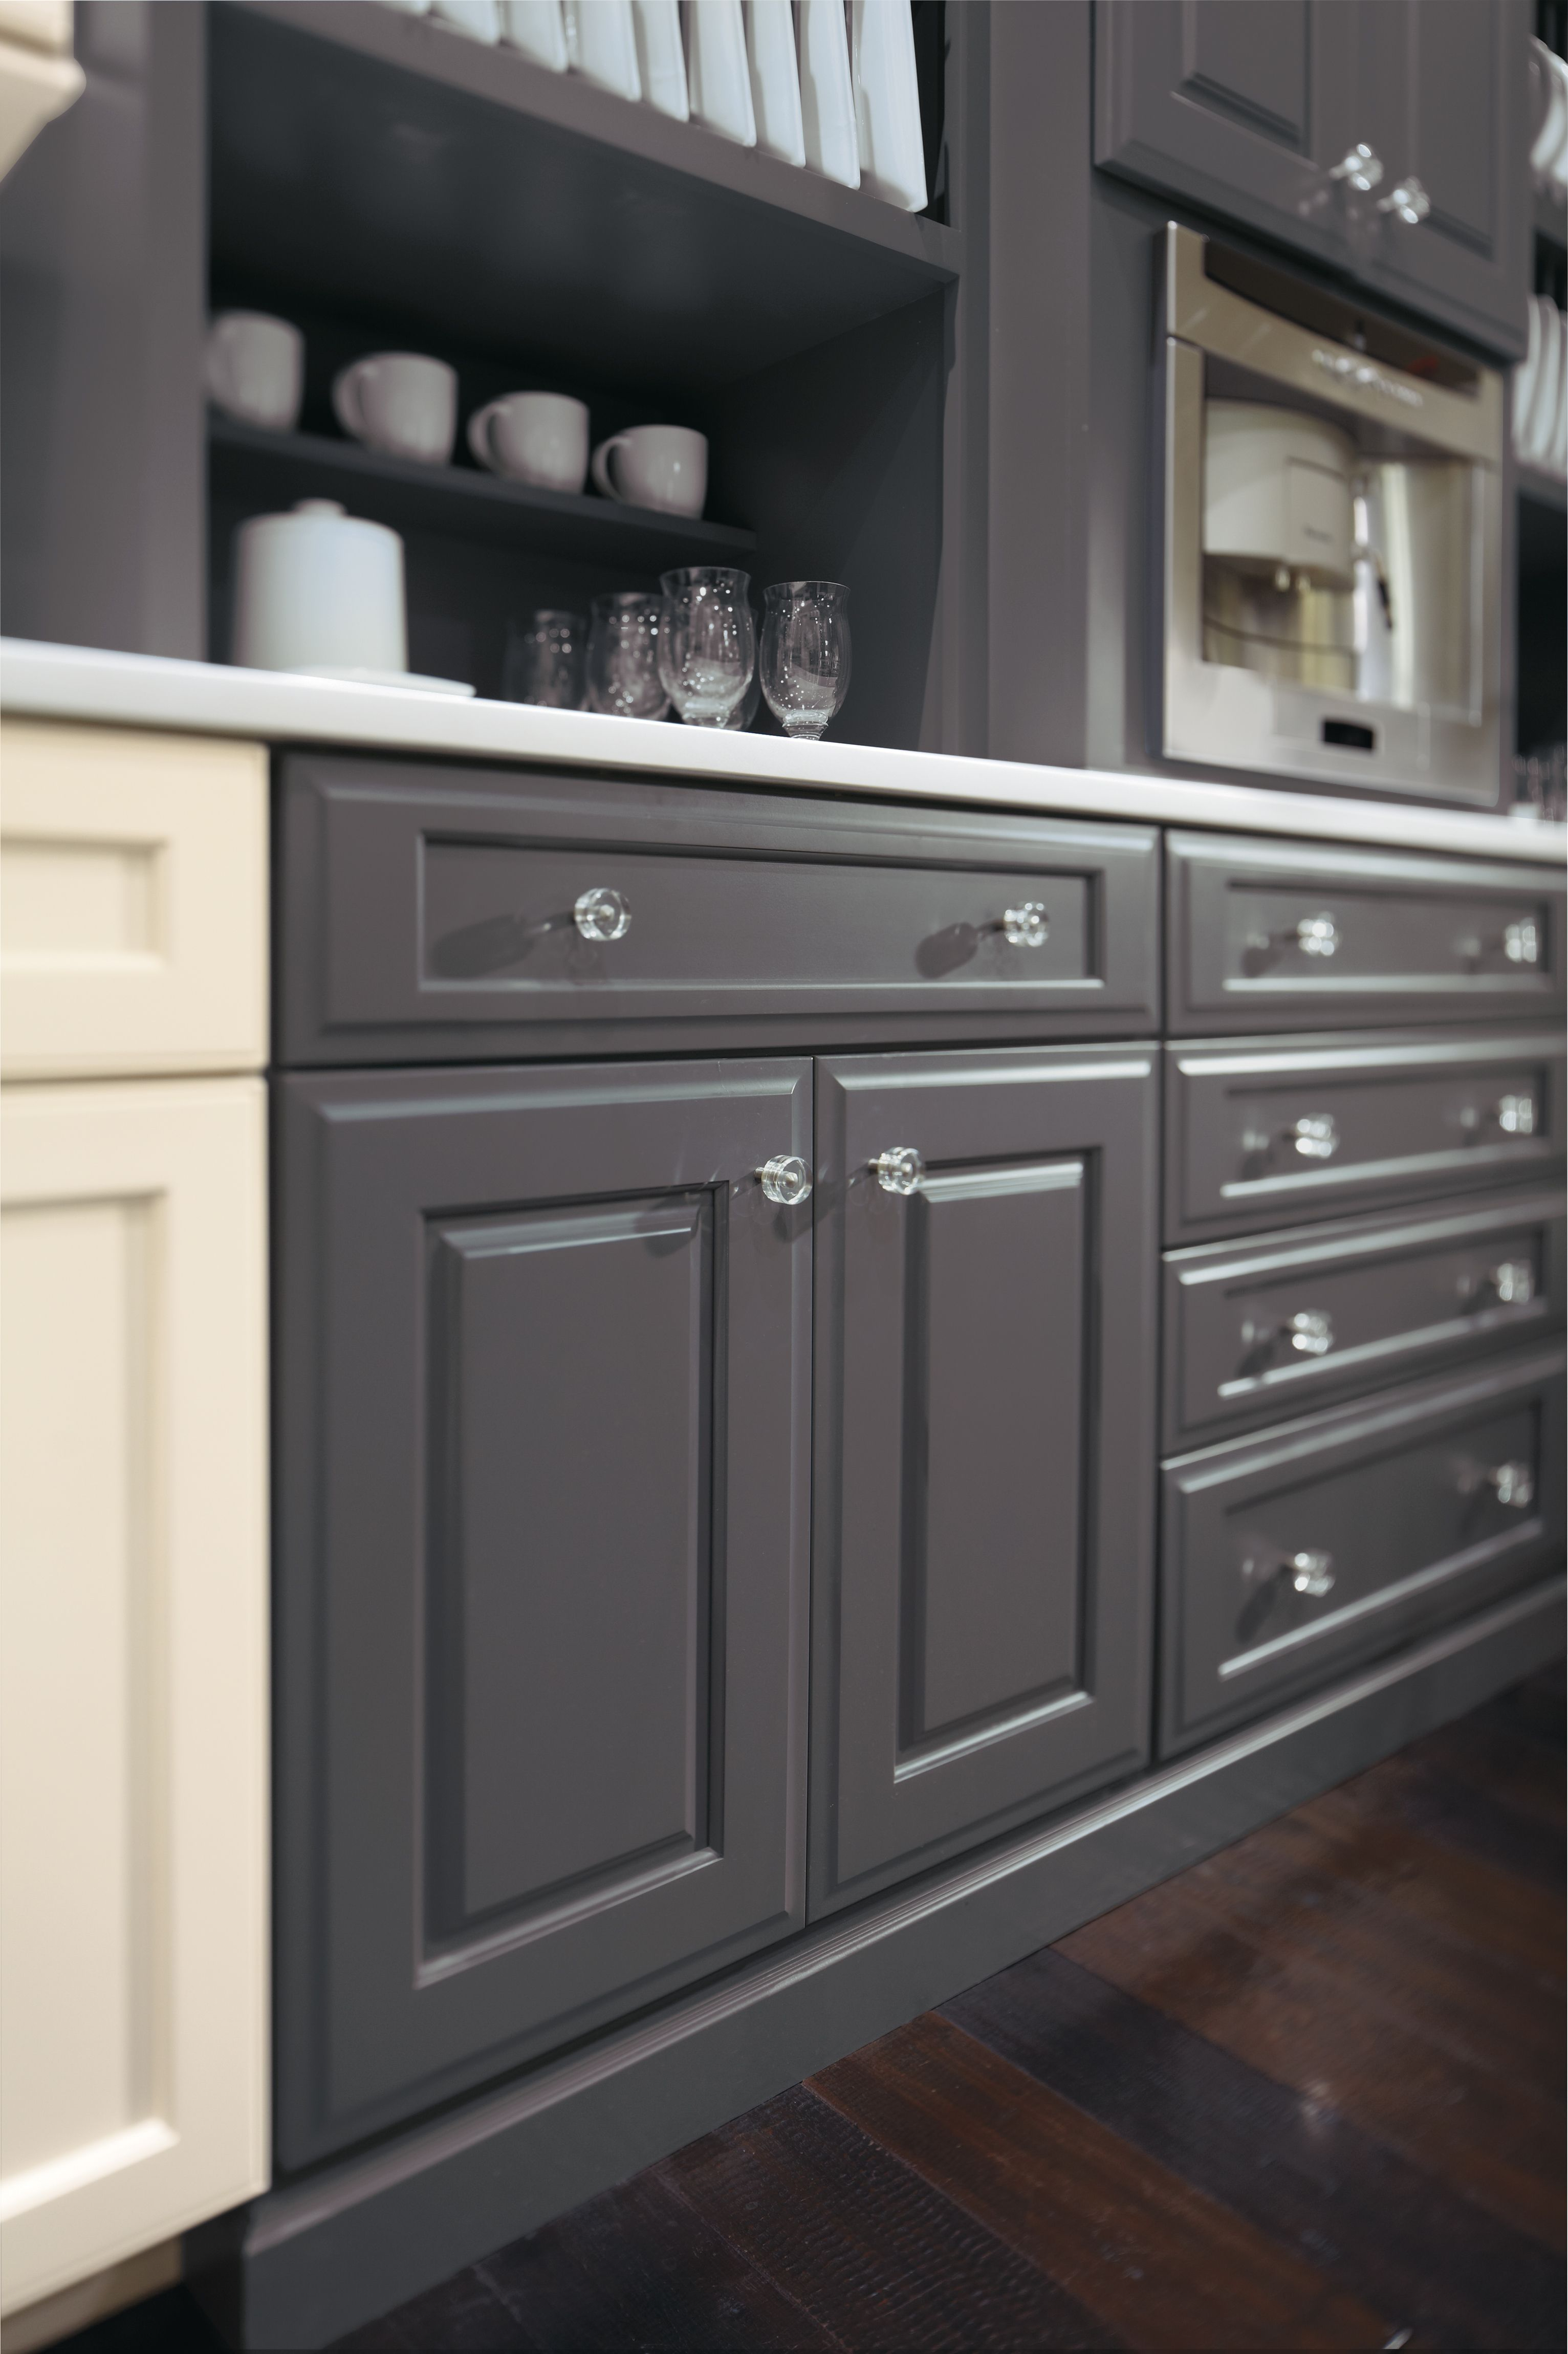 Match Your Cabinet Color To Just About Anything Your Heart Desires Custom Bathroom Cabinets Masterbrand Cabinets Kitchen Cabinets